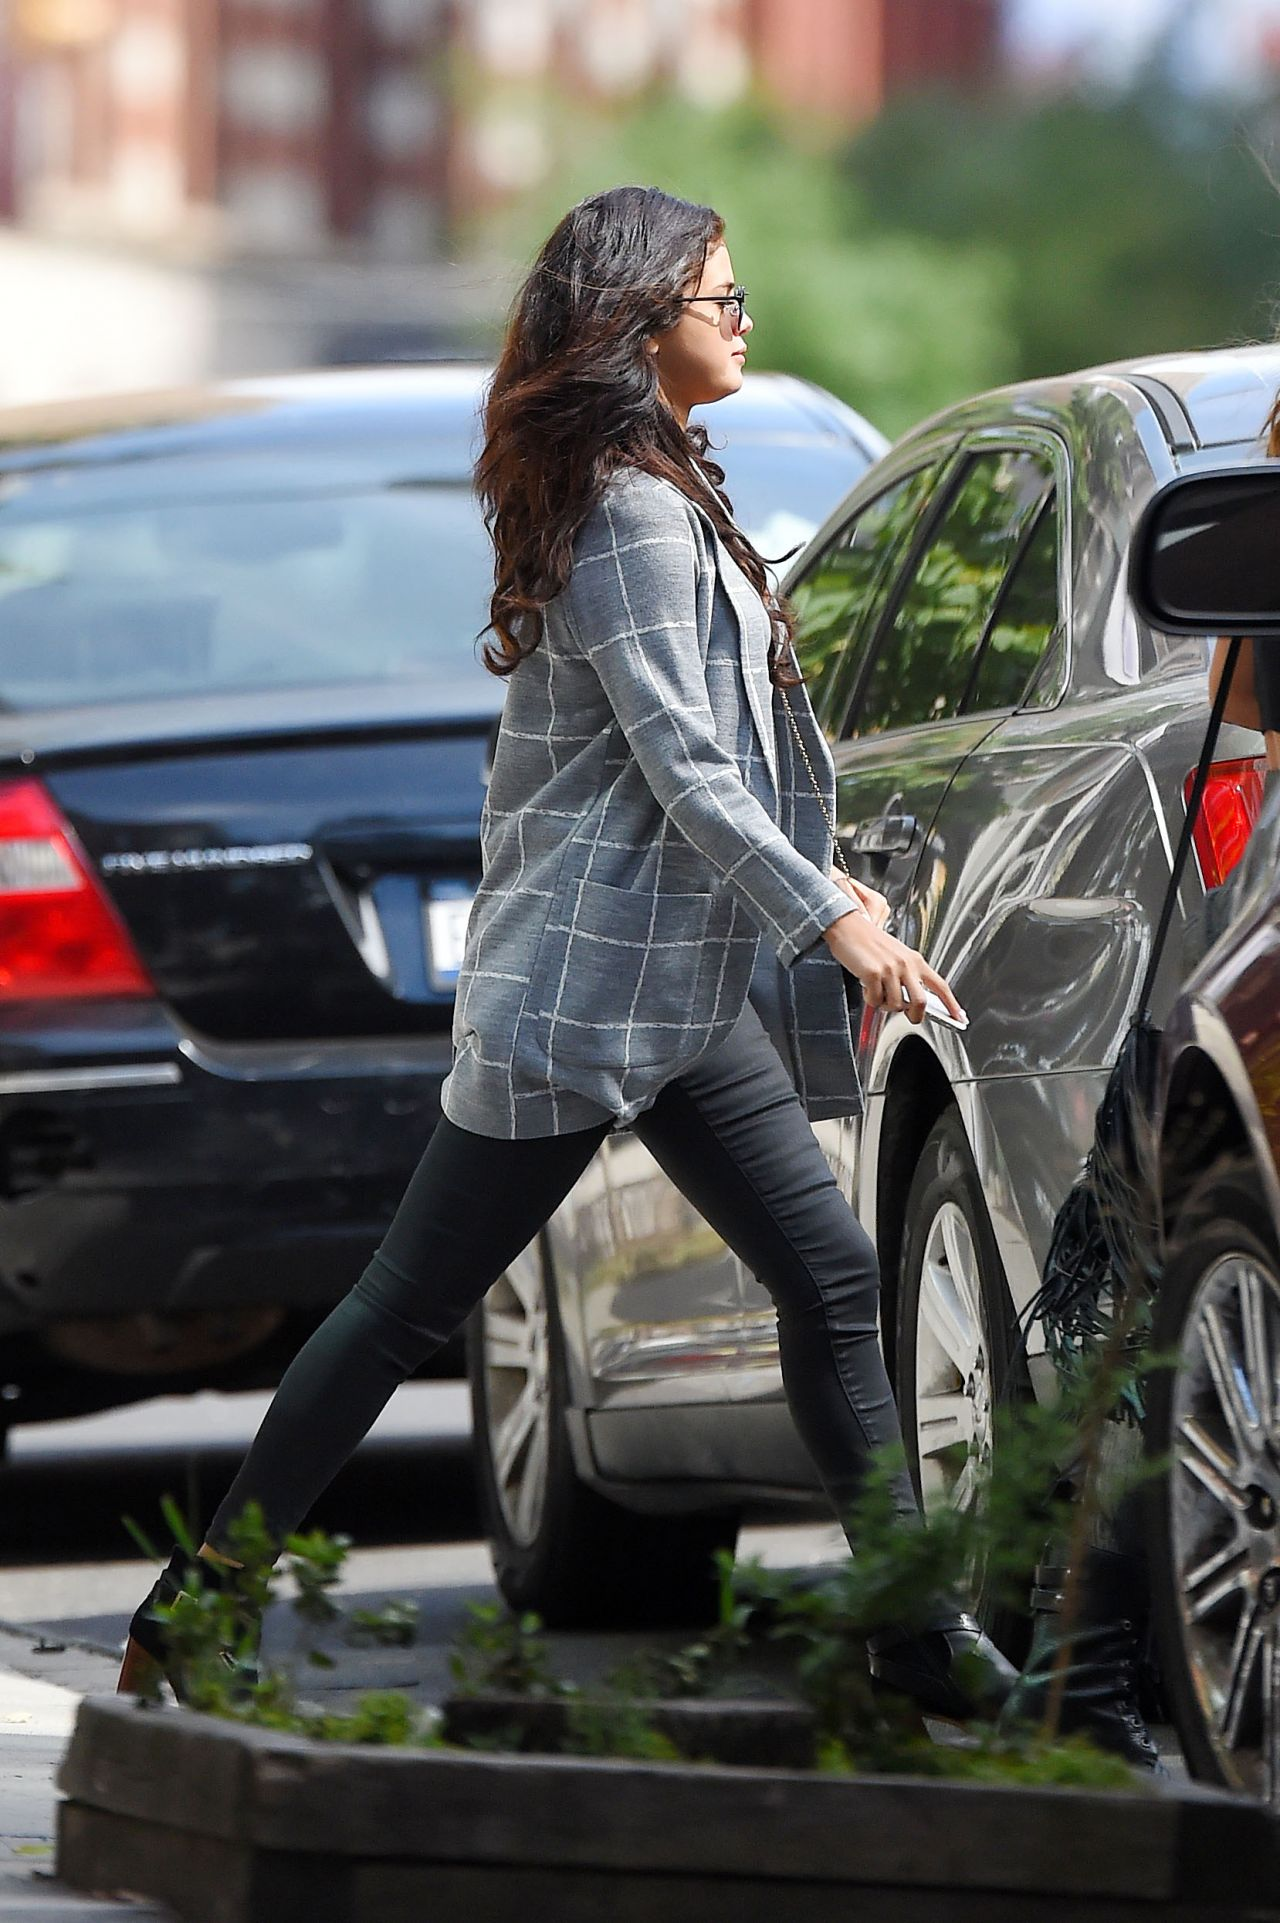 Selena Gomez Out in Soho in New York City - September 2014